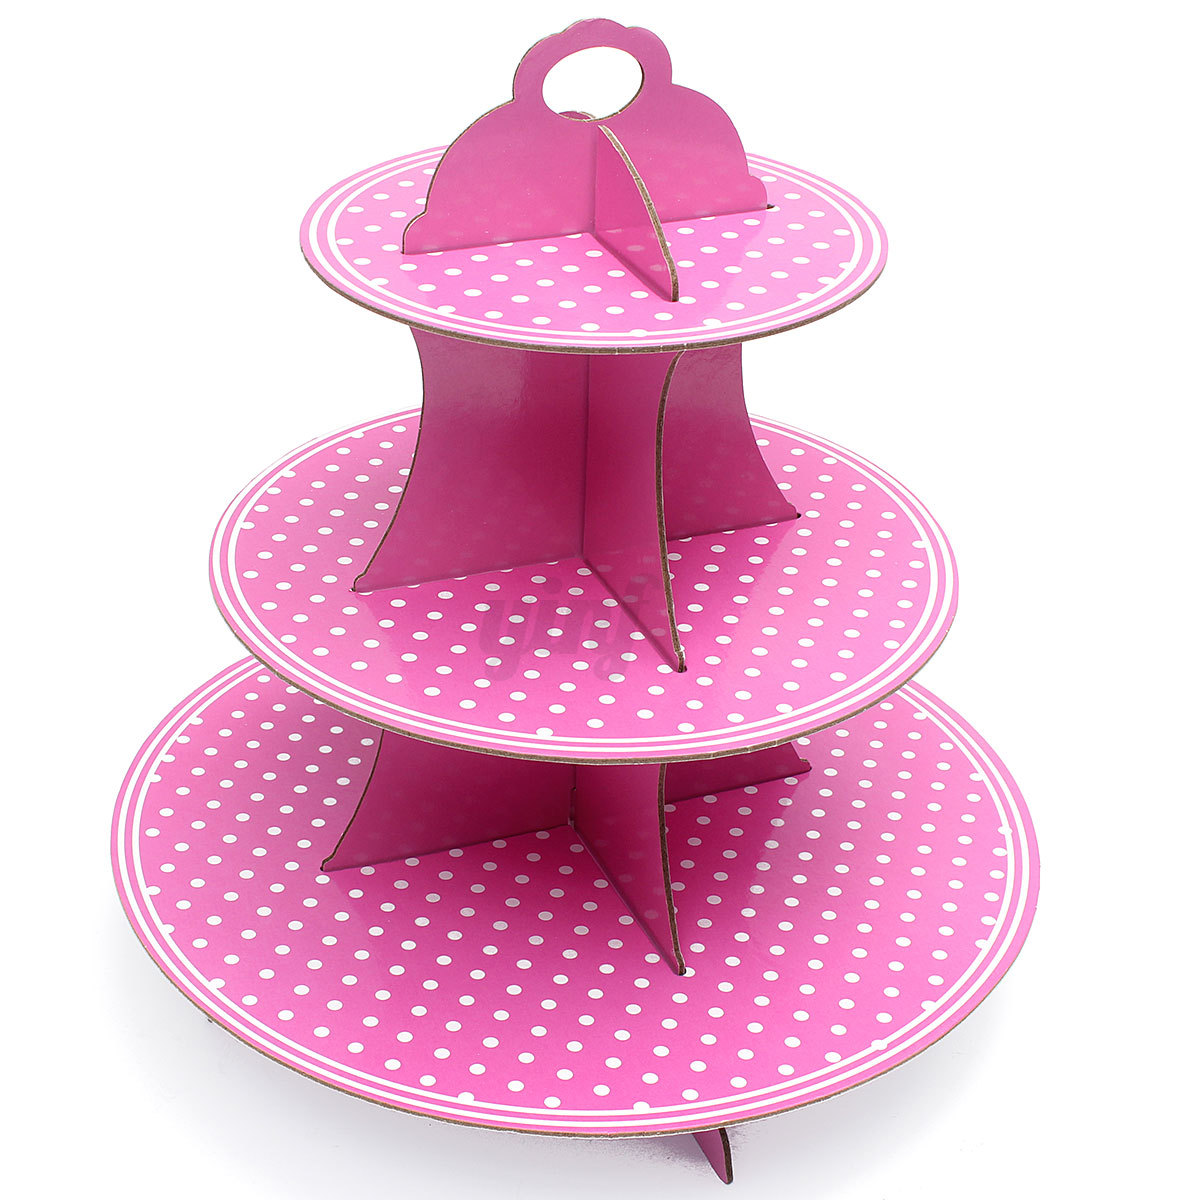 To look at this amazing cupcake stand, you'd be hard-pressed to believe that the main ingredient is – cardboard! That's the secret to its simplicity and also its amazing looks, so why not follow the guide you'll find below and whip one up at home today?